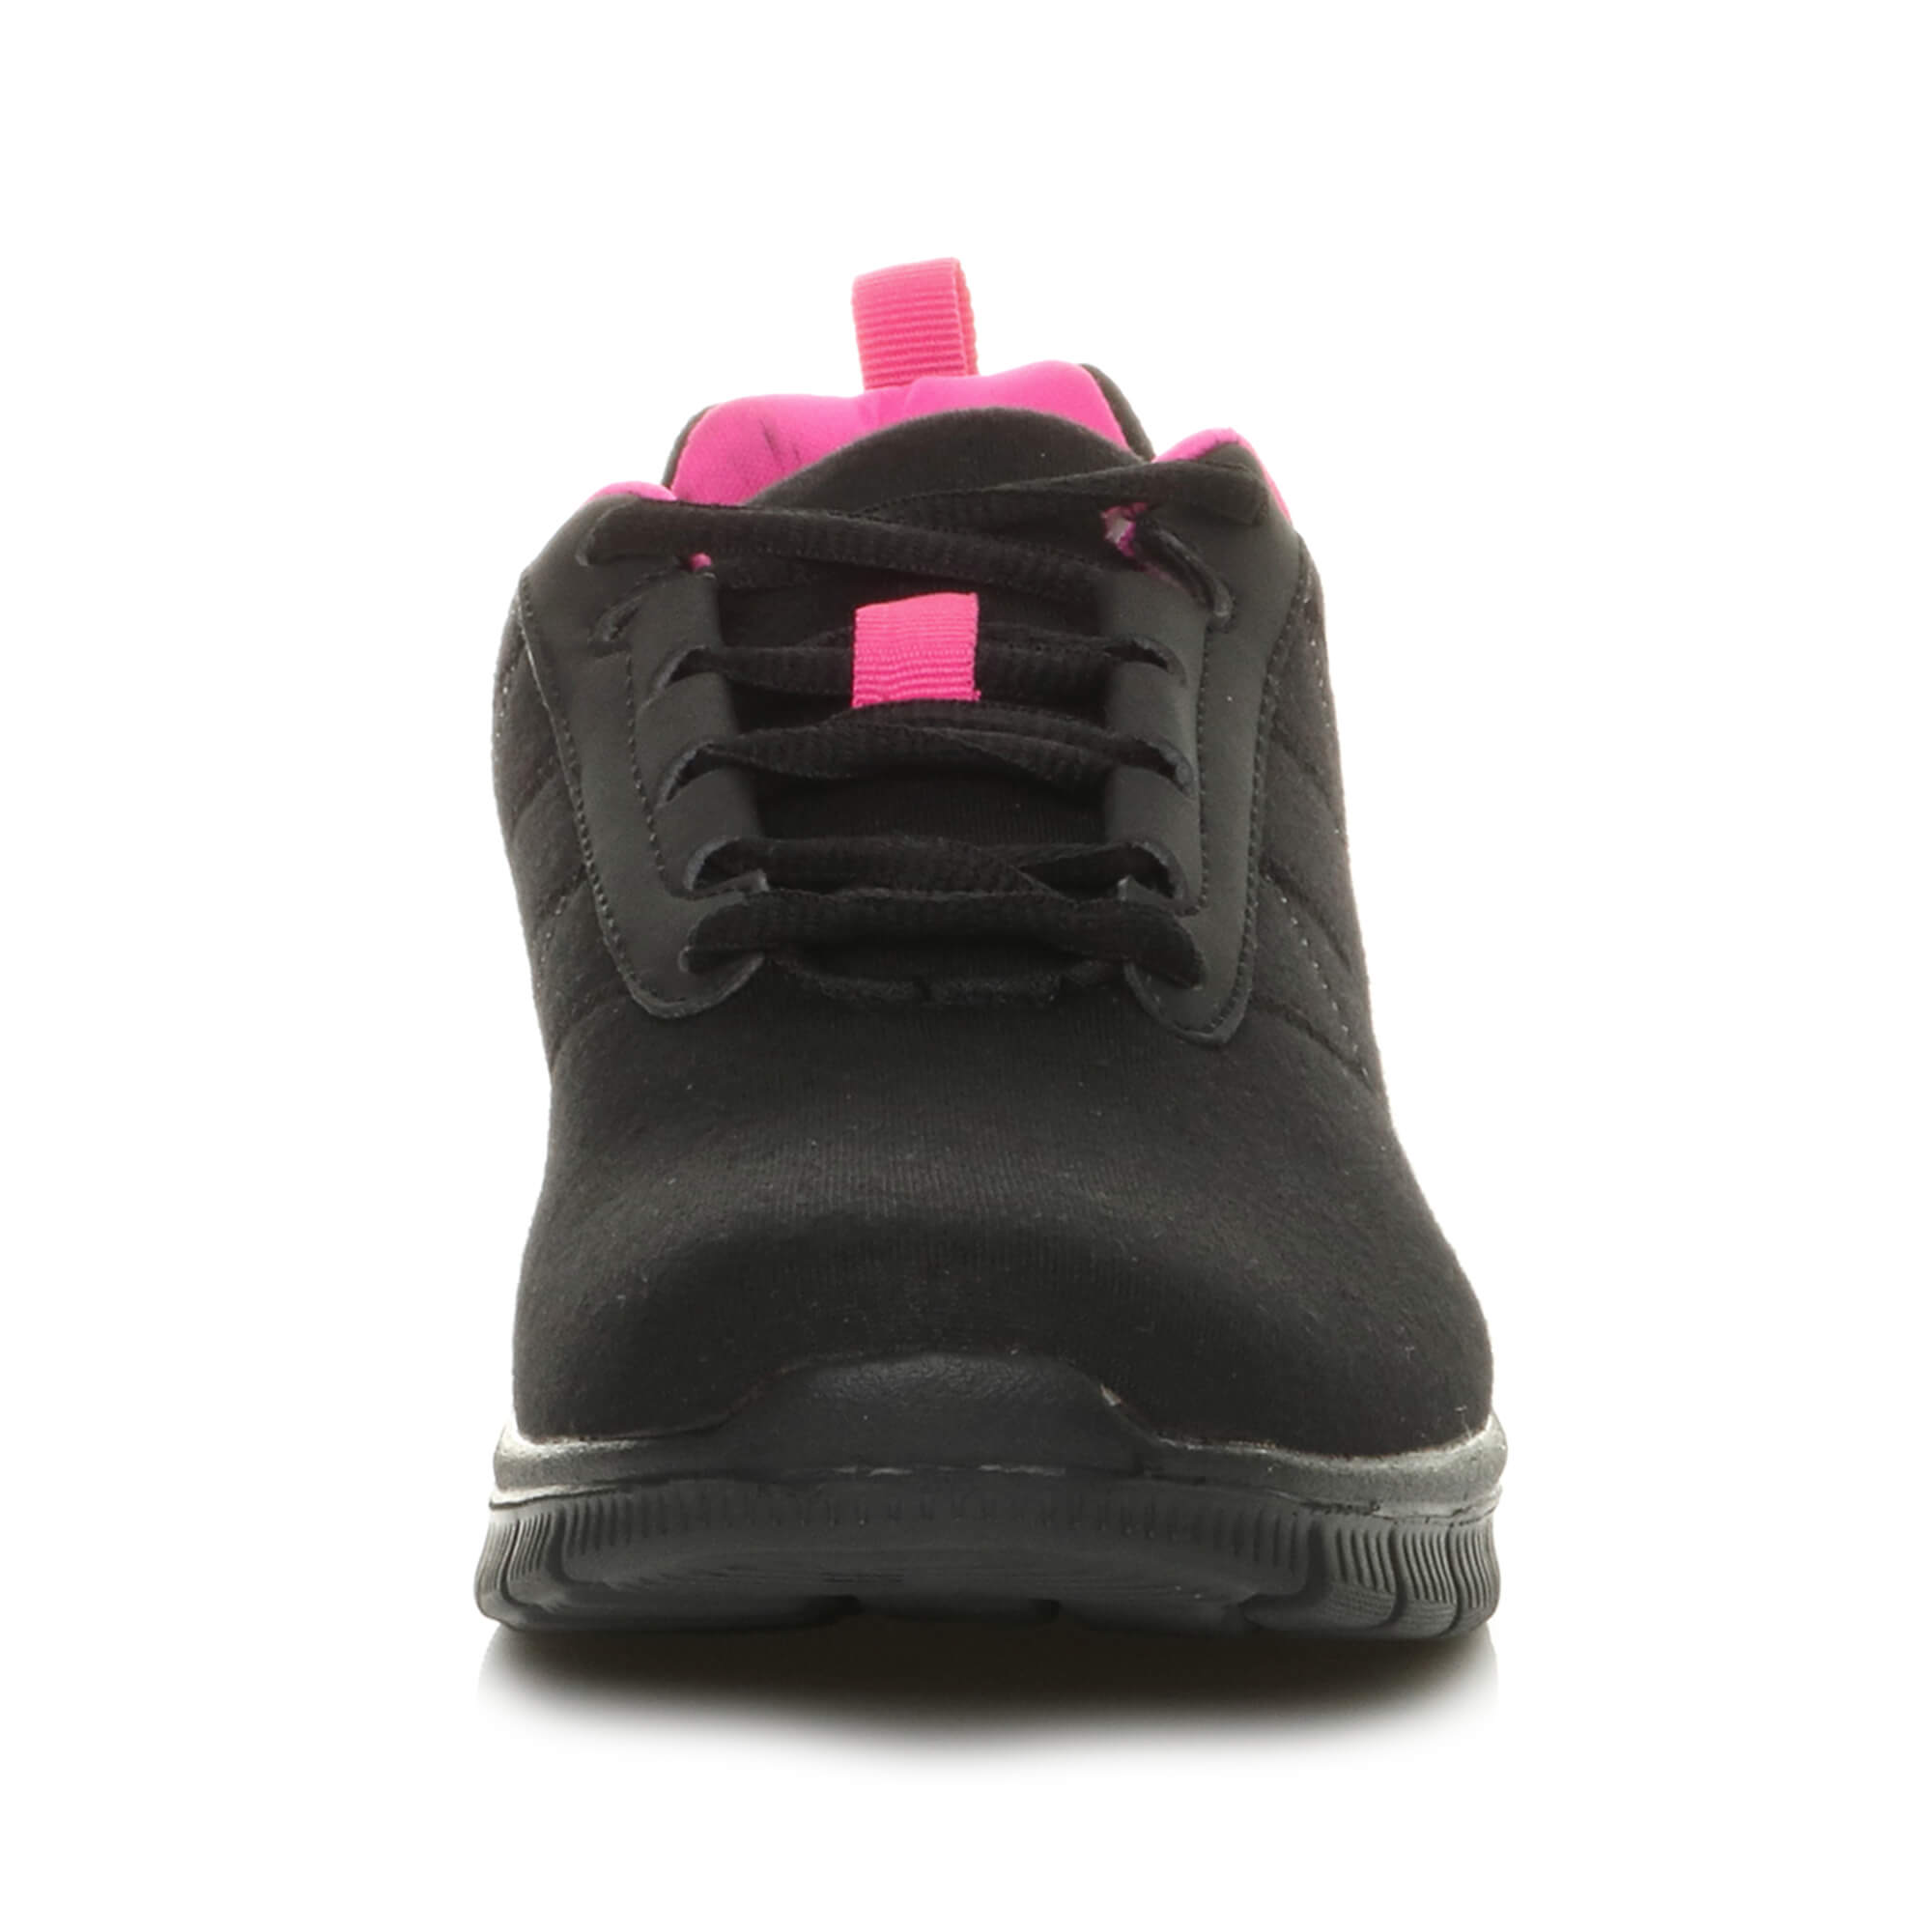 Womens-ladies-comfort-memory-foam-lace-up-trainers-activewear-sneakers-gym-shoes thumbnail 7